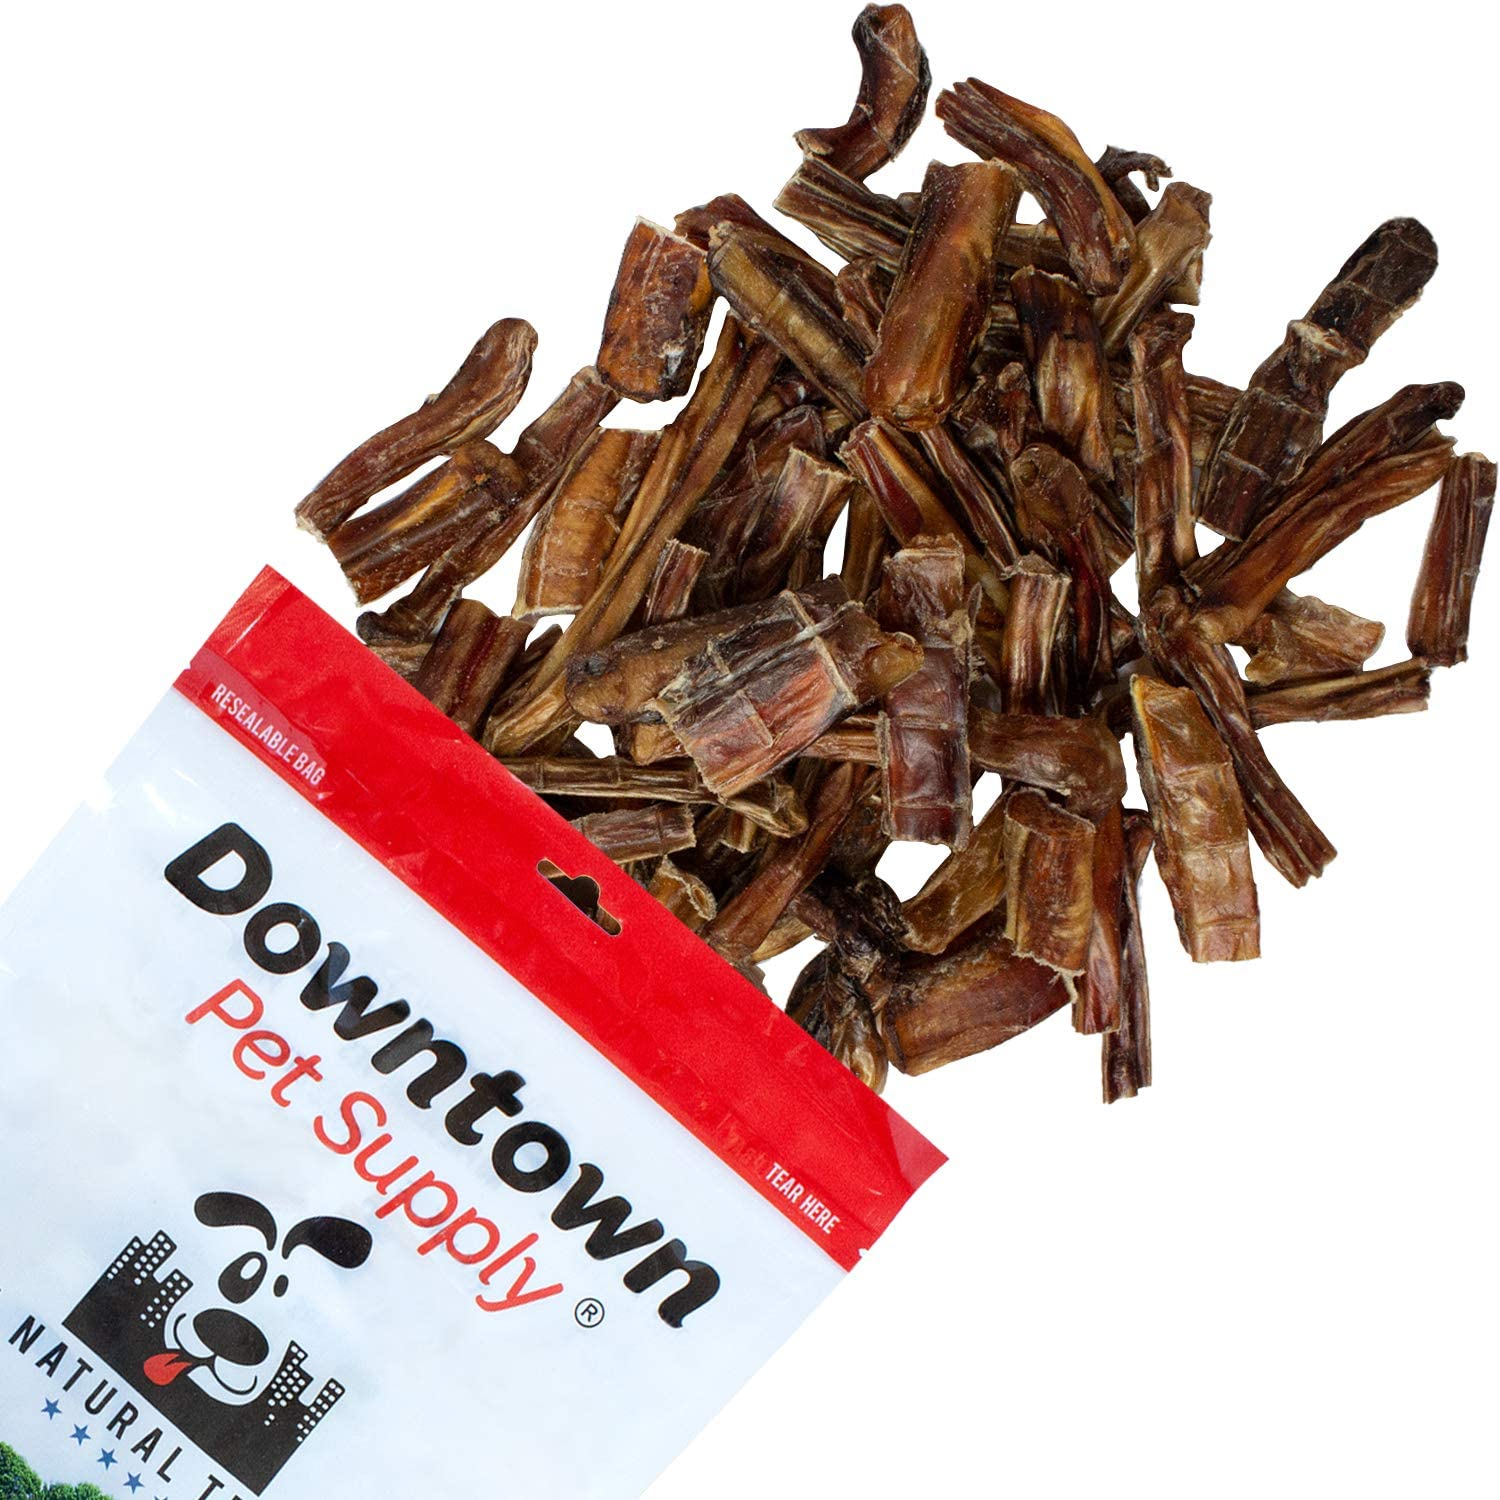 Downtown Pet Supply USA Bully Stick Bites Chew Meaty Bits Treats, All Natural Beef, for Small, Medium, and Large Dogs (8oz, 1 lb, 2 lb)